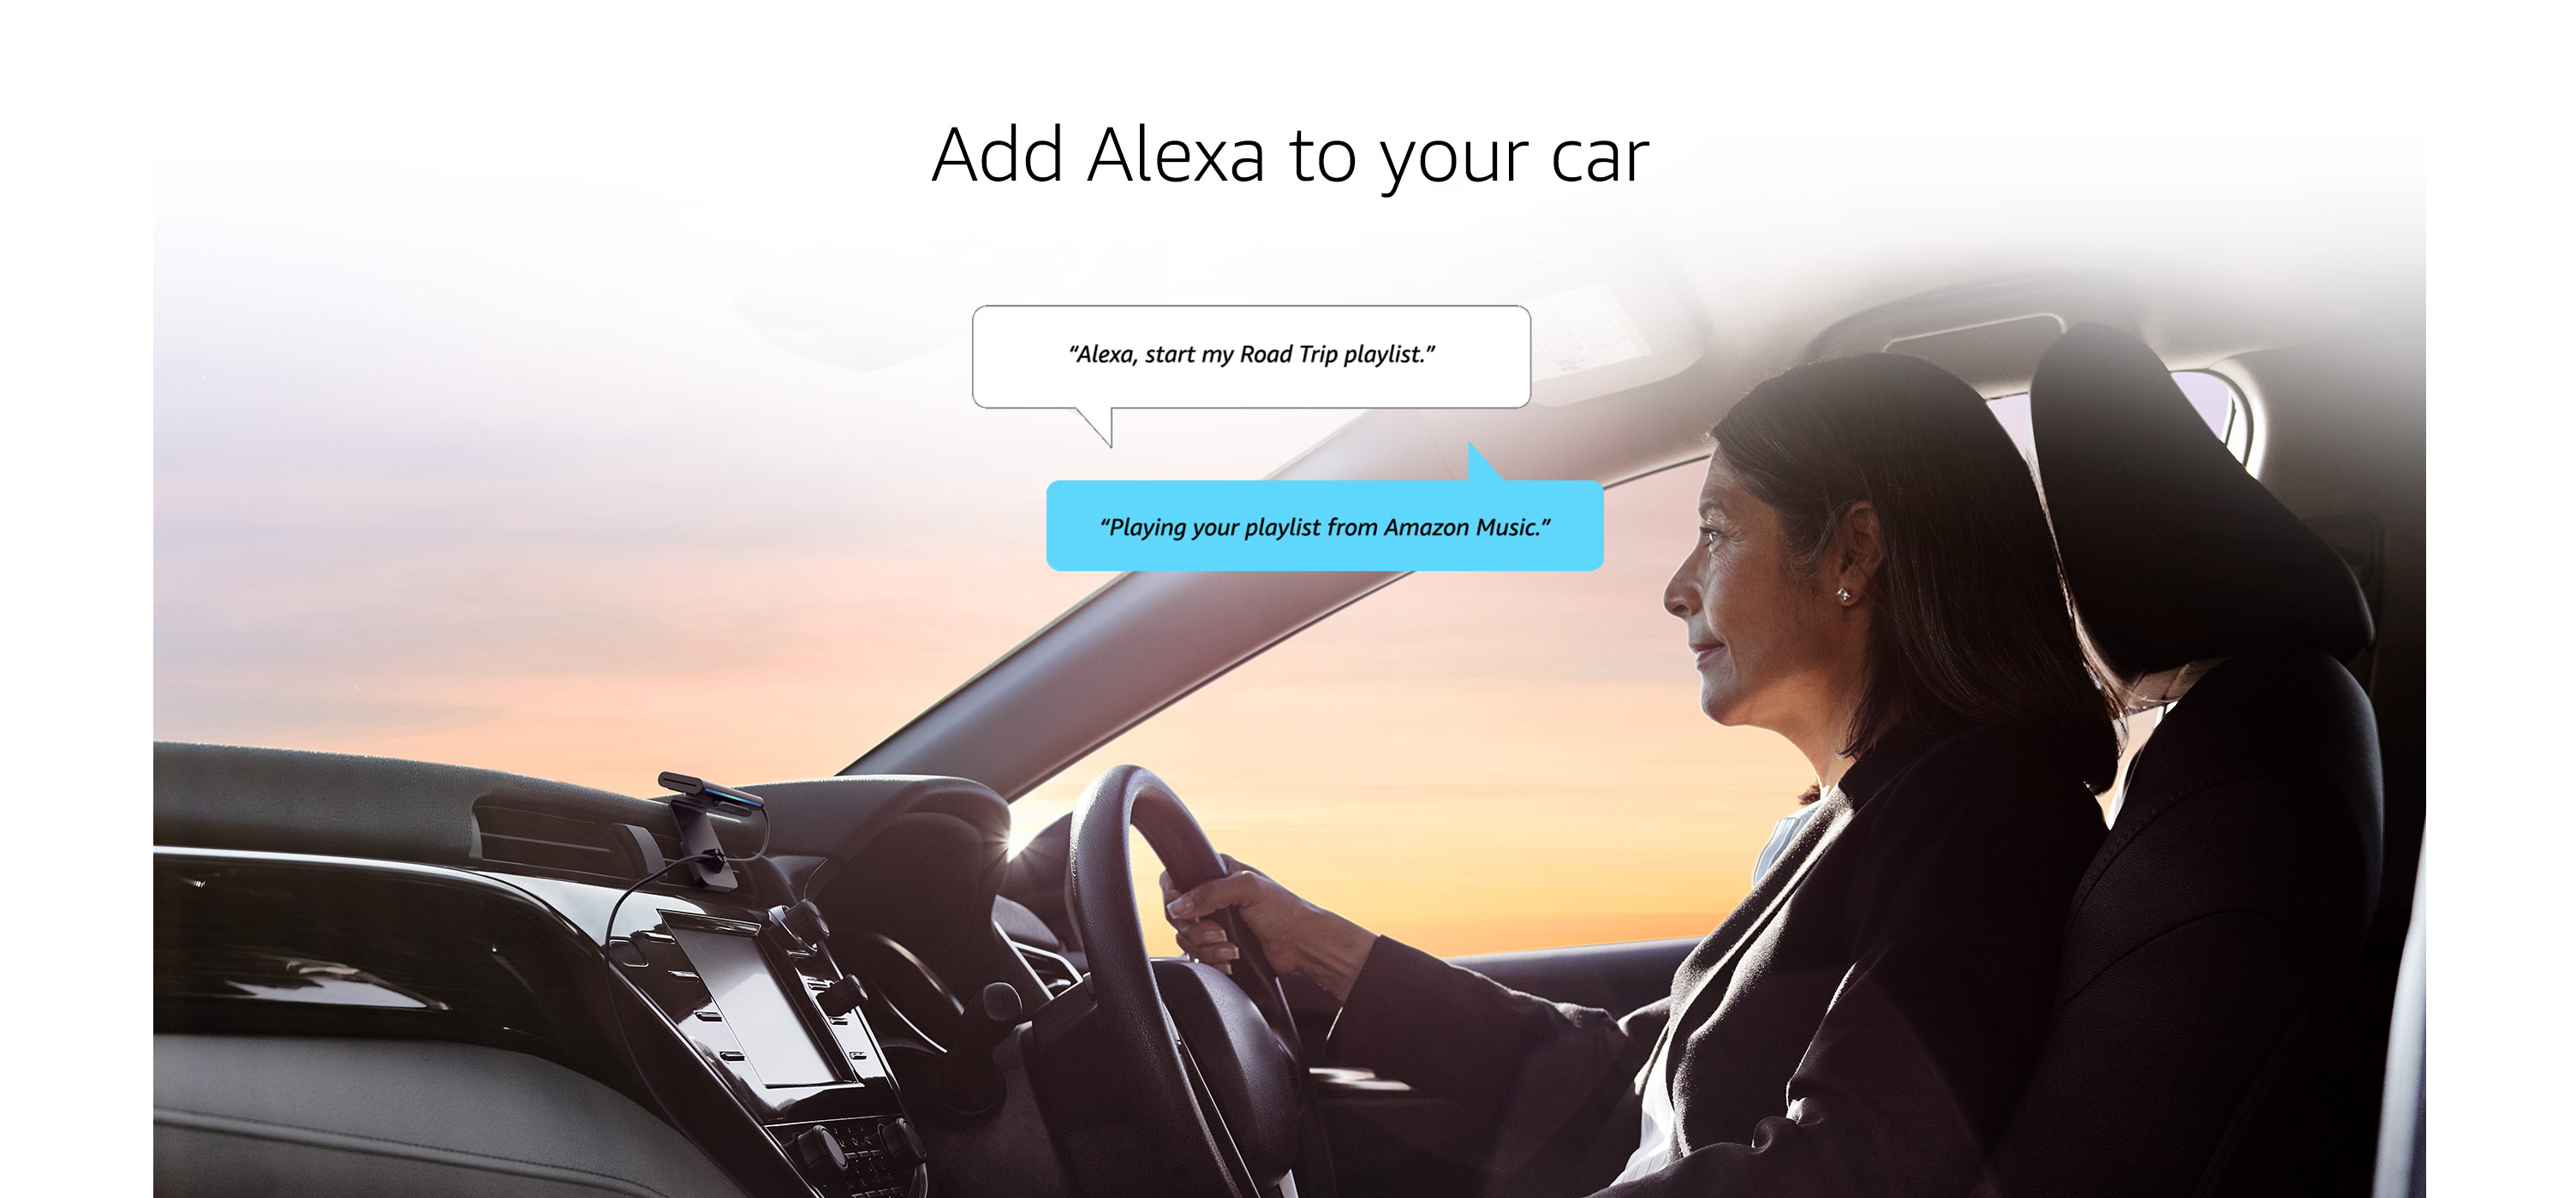 Add Alexa to your car